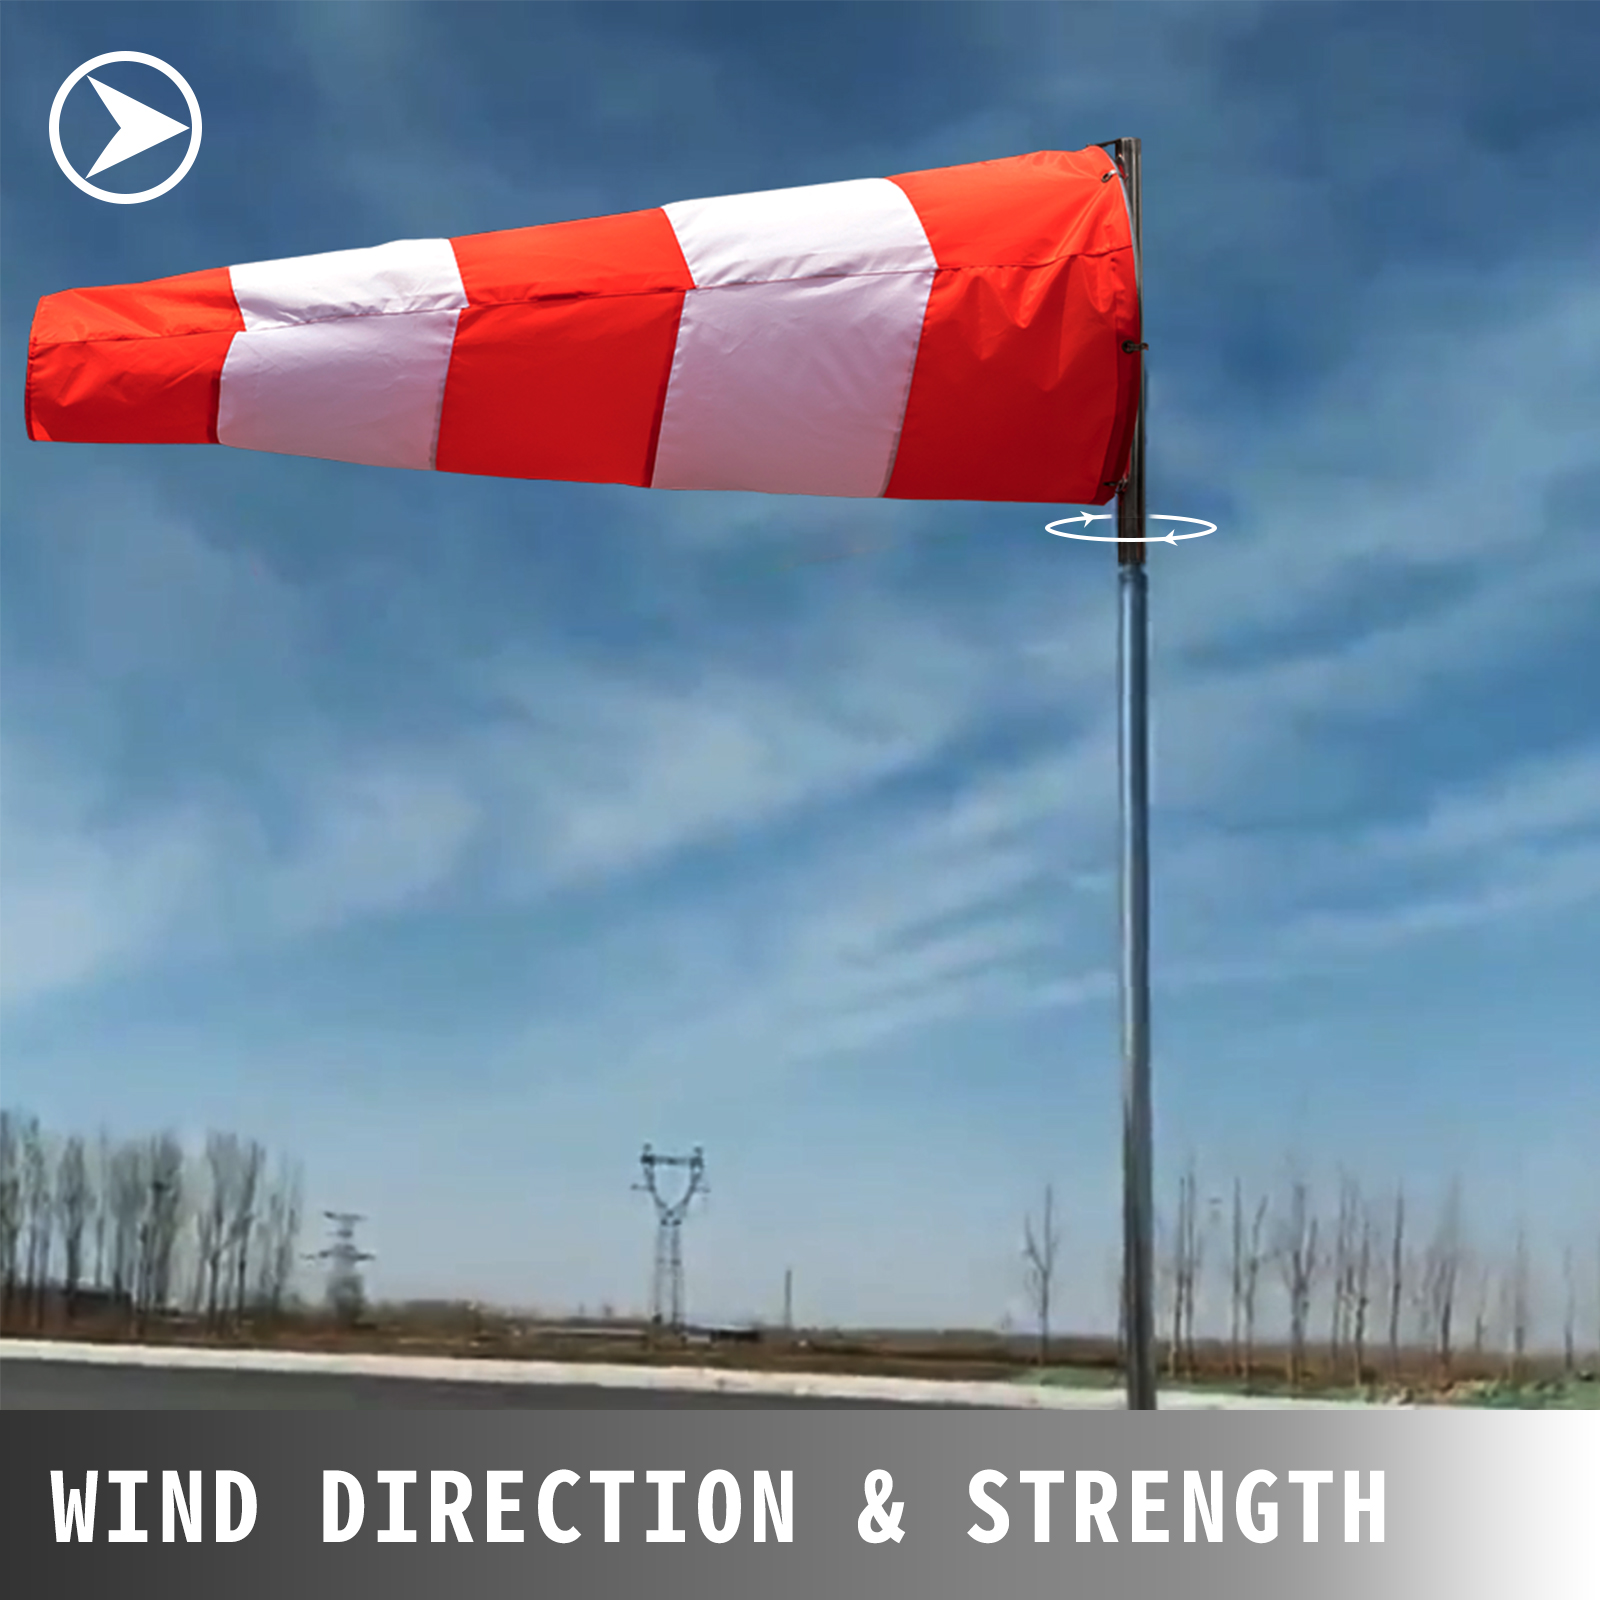 VEVOR Airport Windsock Wind Direction Sock 13 x 54 Inch Aviation Wind Sock Orange Red w//White Nylon Windsock Weatherproof Airport Wind Sock Outdoor Air Direction Indicator for Airport Farm /& Park